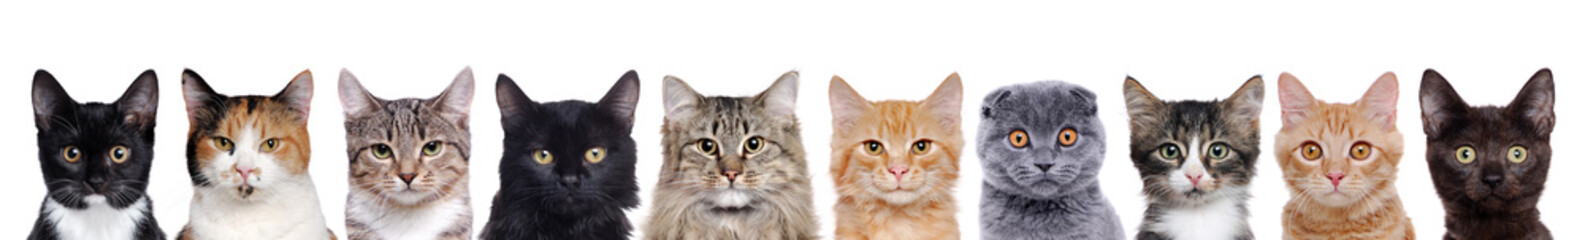 closeup portrait of a group of cats of different breeds sitting in a line isolated over white background